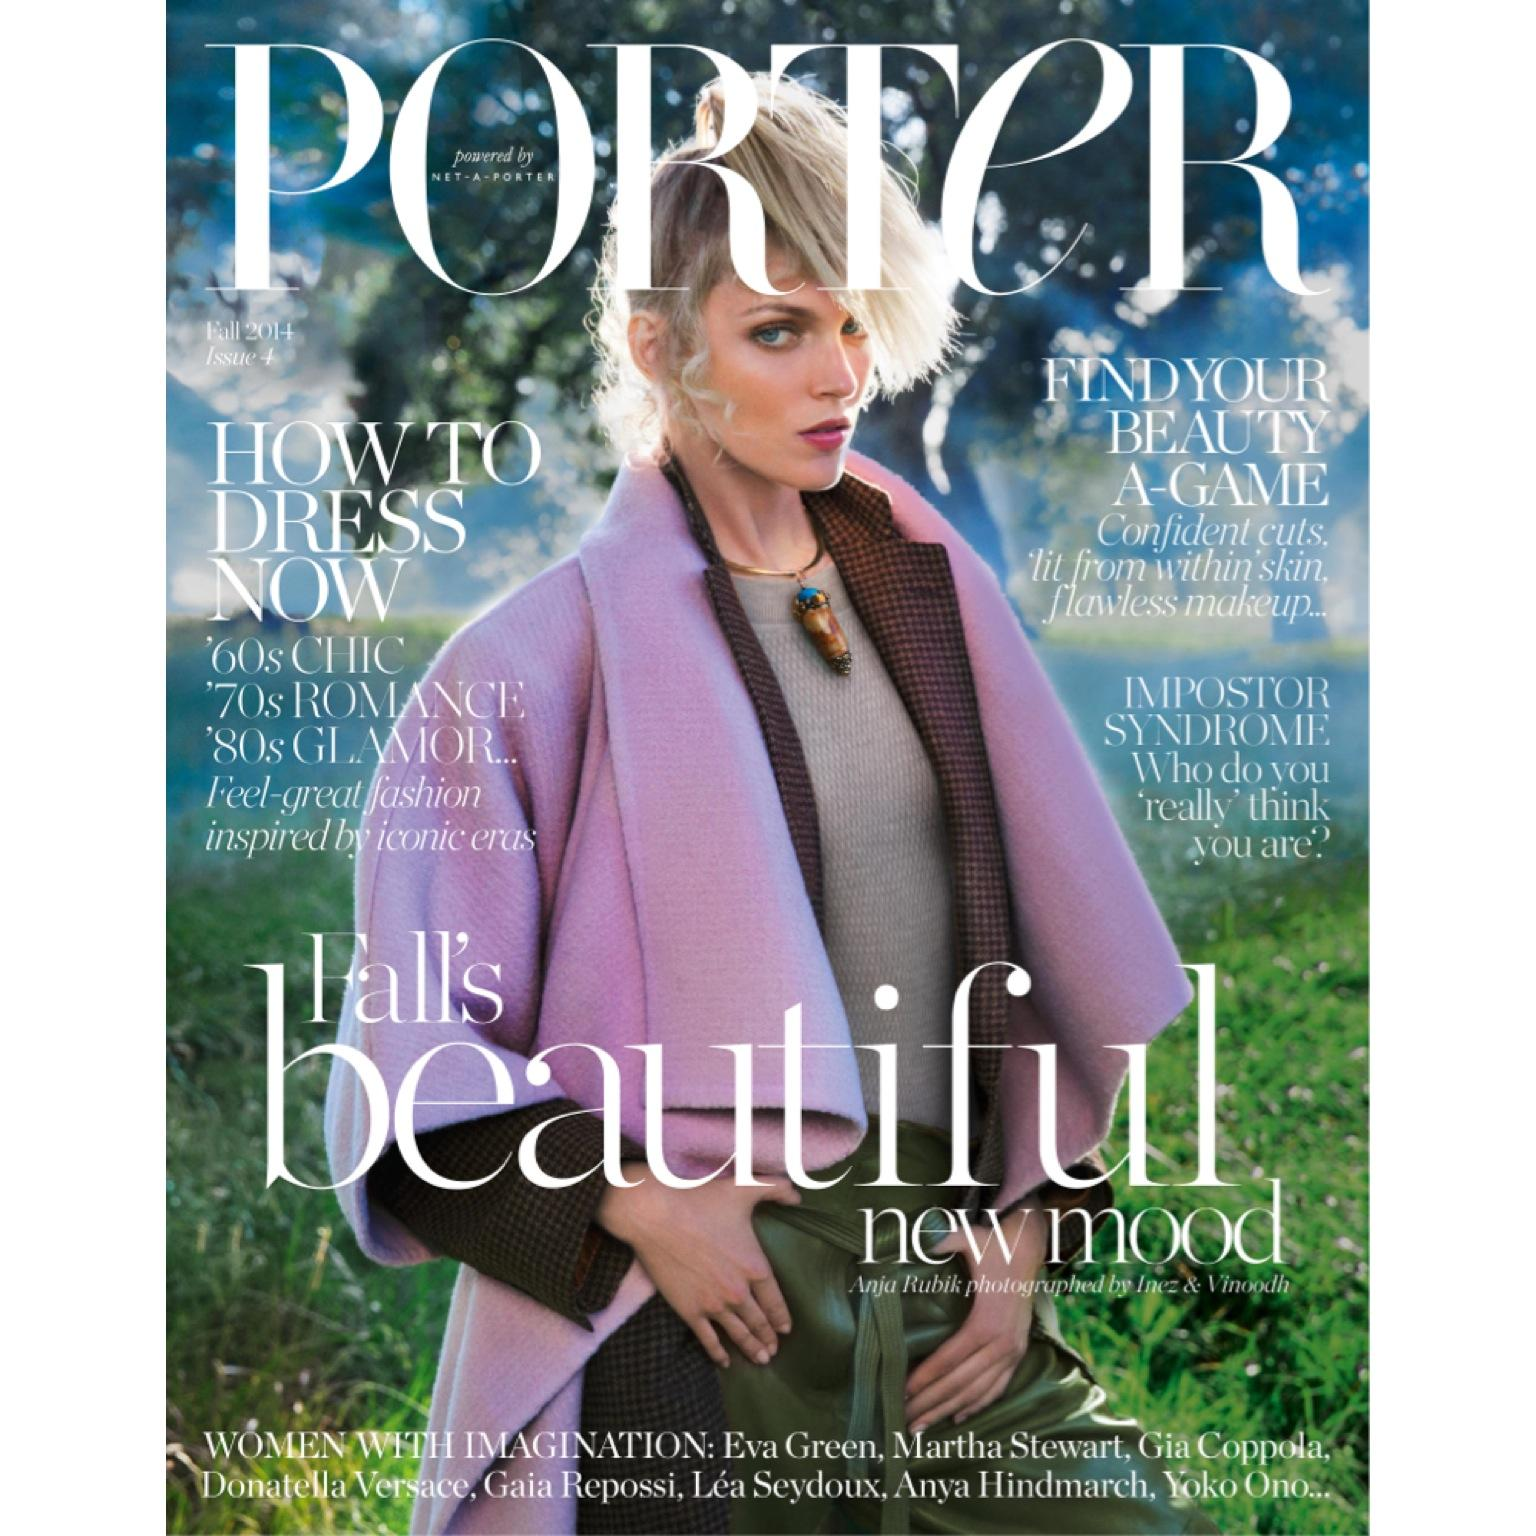 RT @NETAPORTER: See supermodel @anjarubikblog on the cover of @PORTERmagazine issue 4. Out Friday, August 1. http://t.co/SeNPyYU7sT http://…